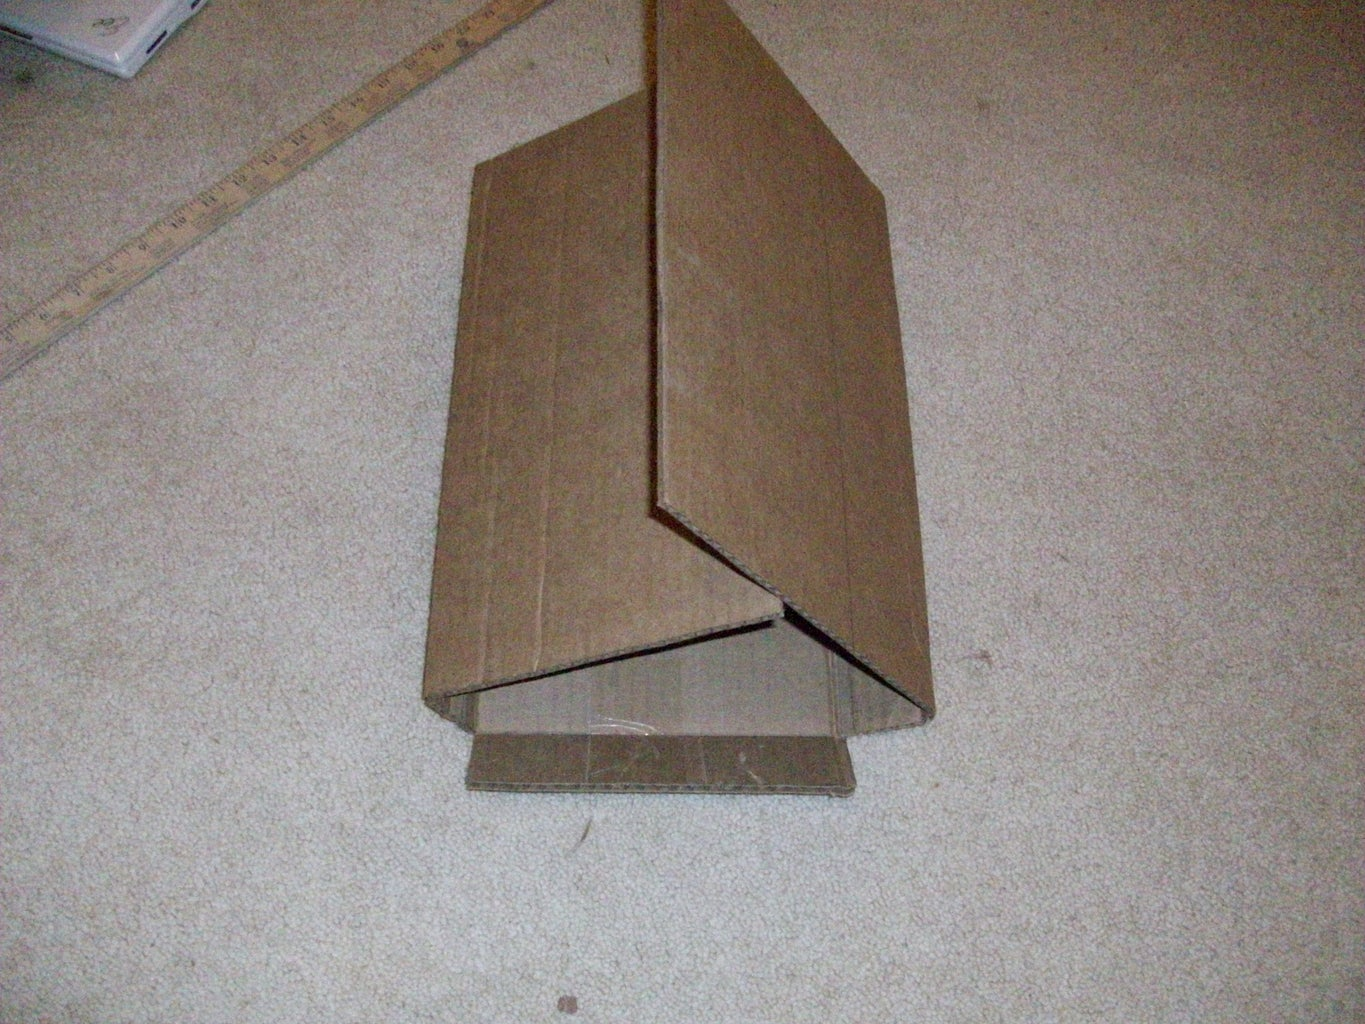 Making the Flaps Foldable